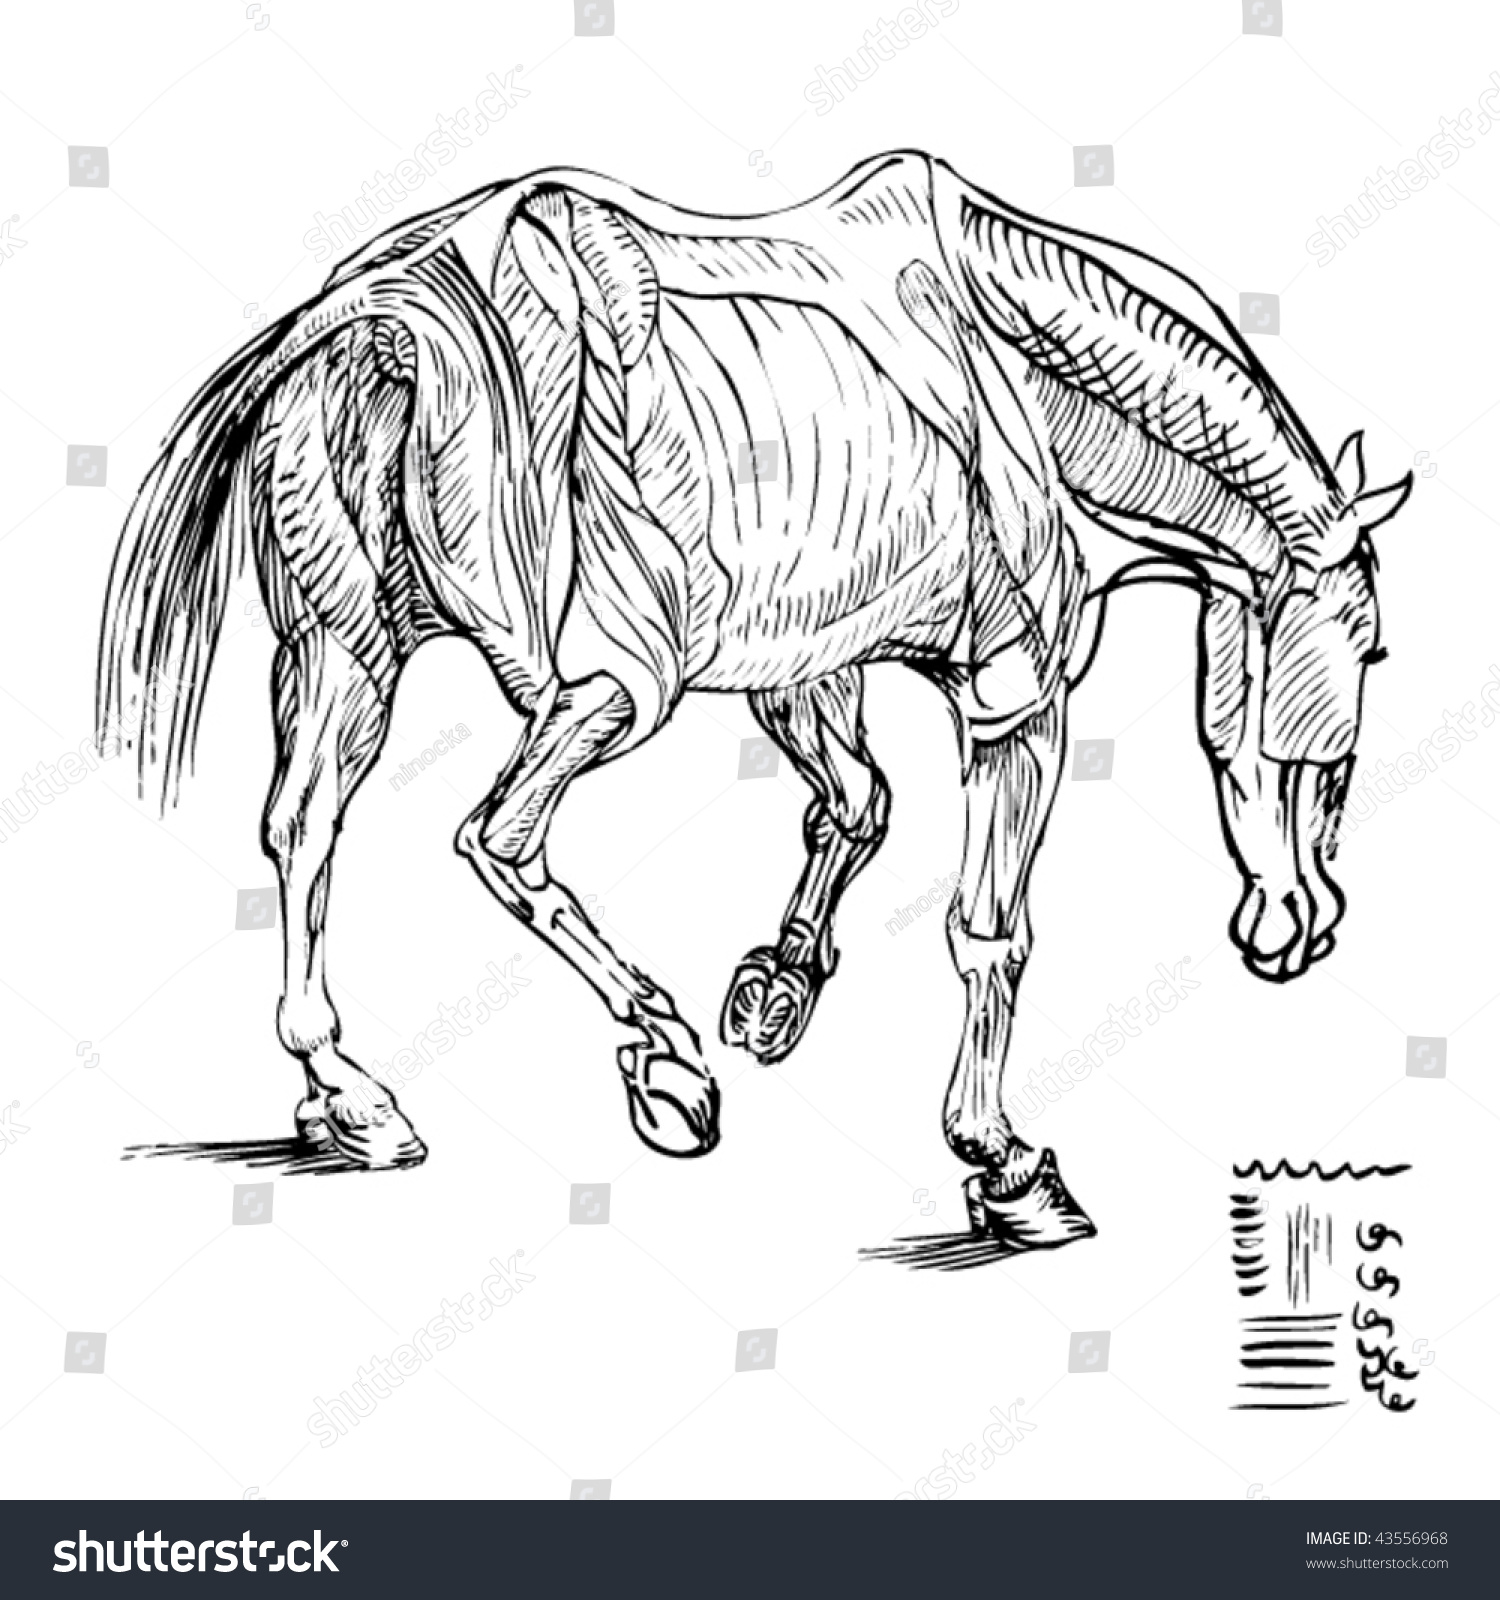 Stock Vector Illustration Ink Drawing Study Stock Vector 43556968 ...